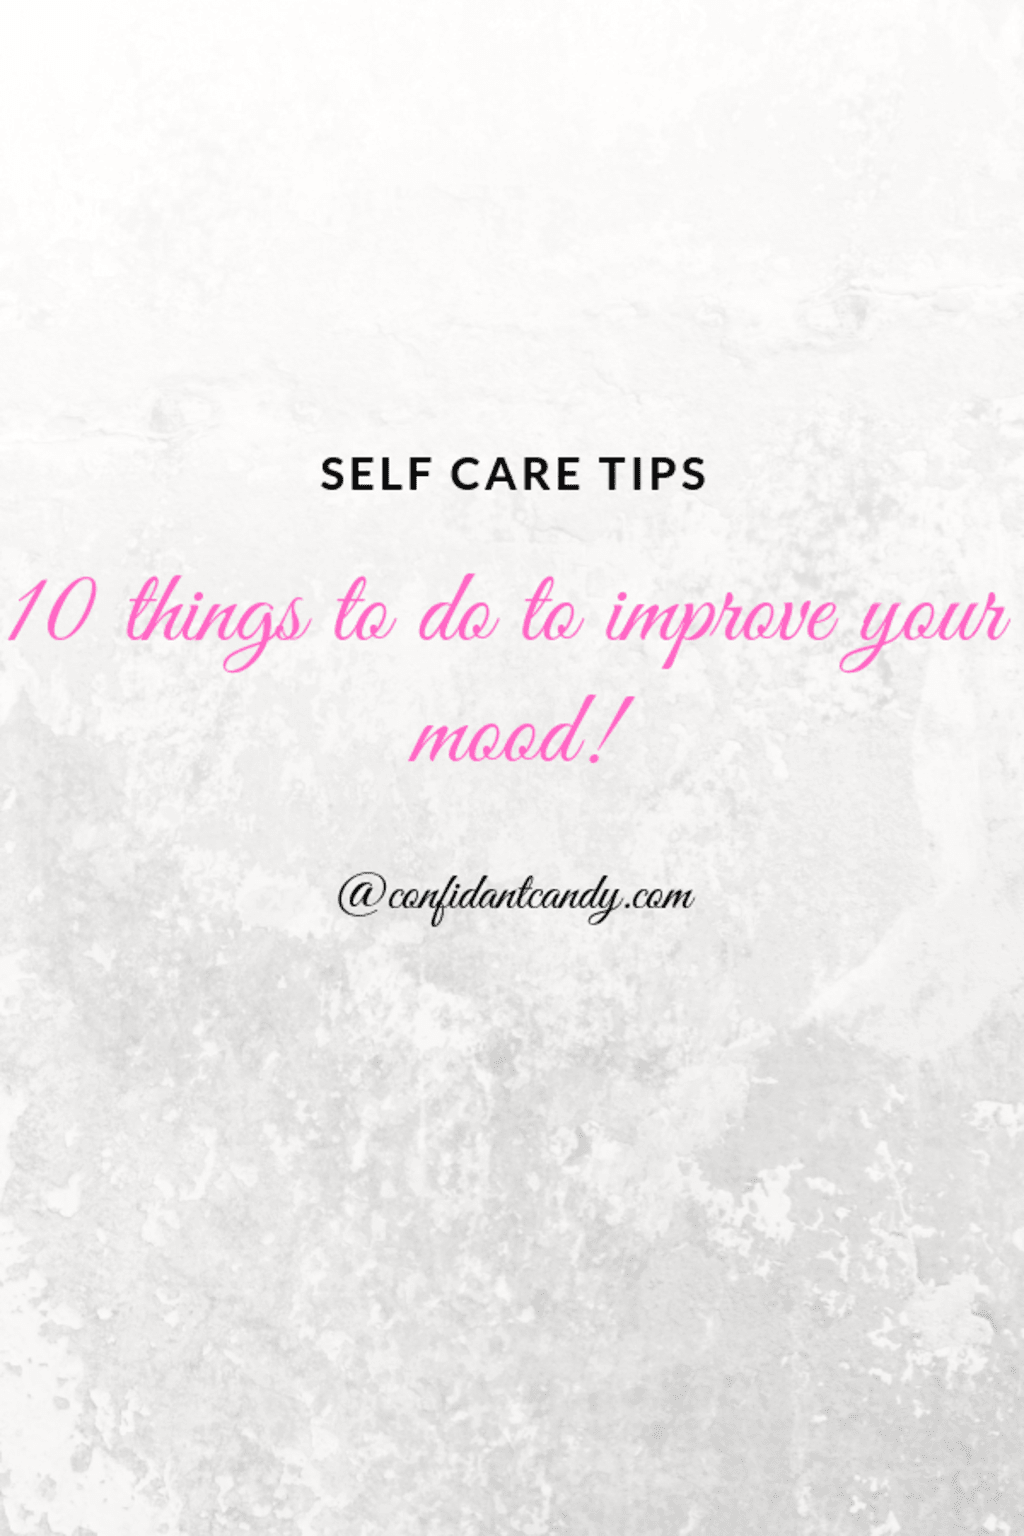 10 Things to Do to Improve Your Mood